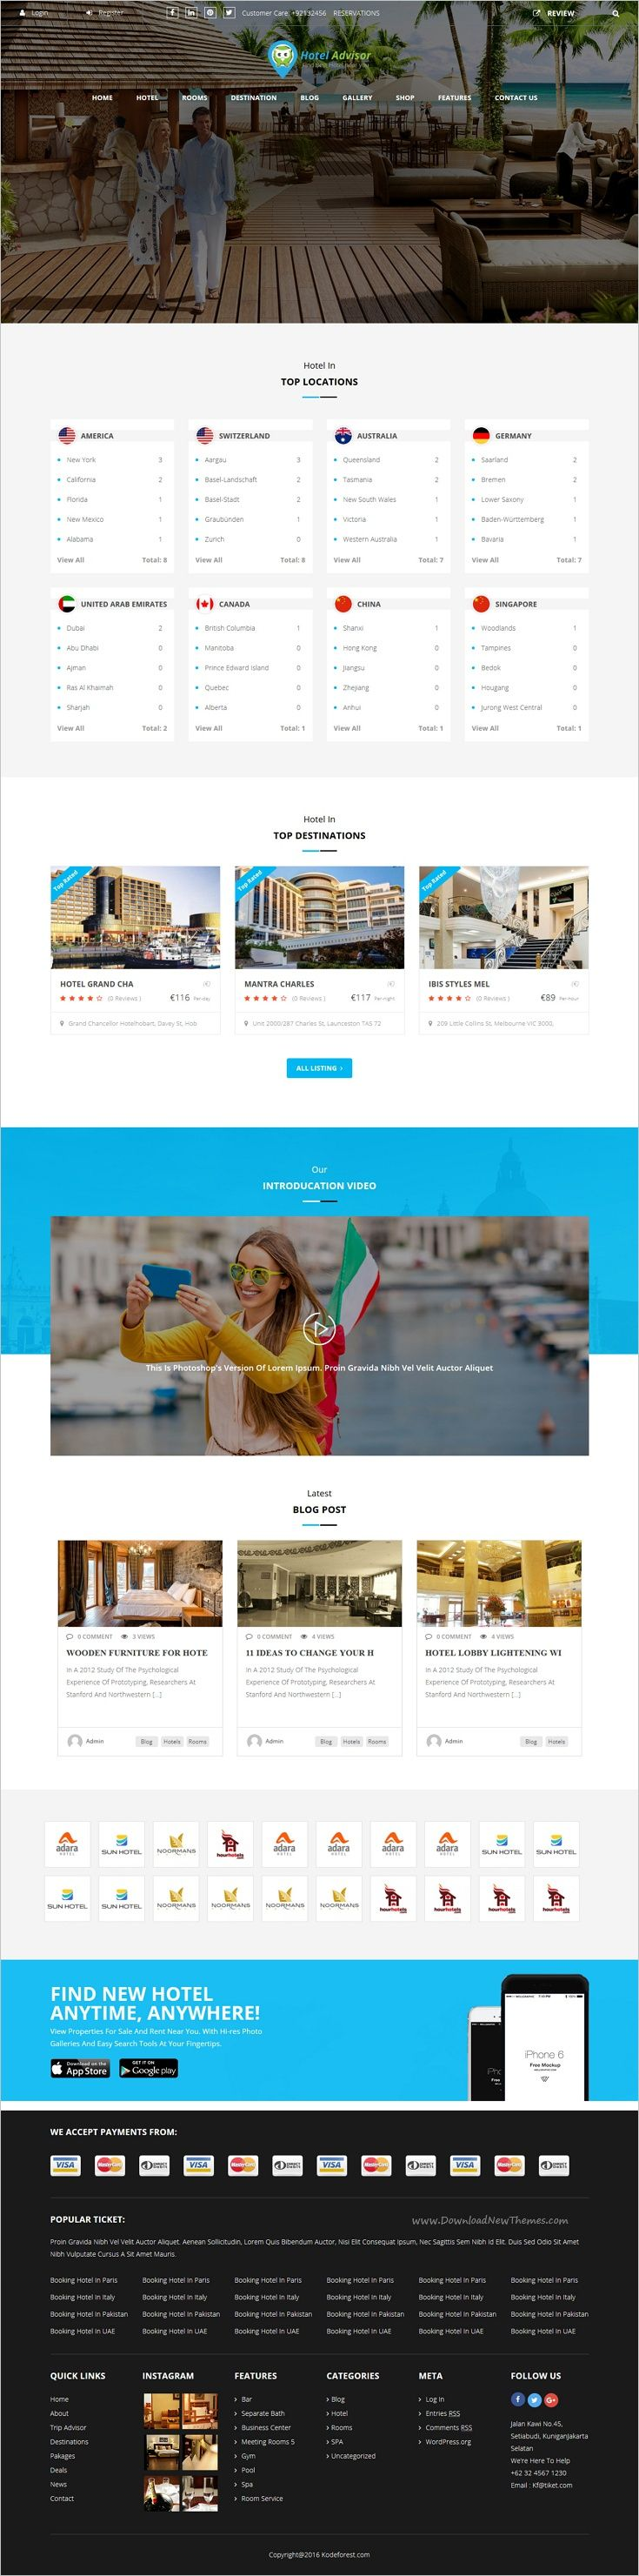 Hotel Advisor is a wonderful 6 in 1 #WordPress theme to #webdesign manage #hotels, hostels, resorts, #rooms reservation with in depth review and booking management system website download now➩  https://themeforest.net/item/hotel-advisor-hotel-management-and-booking-wordpress-theme/18435488?ref=Datasata